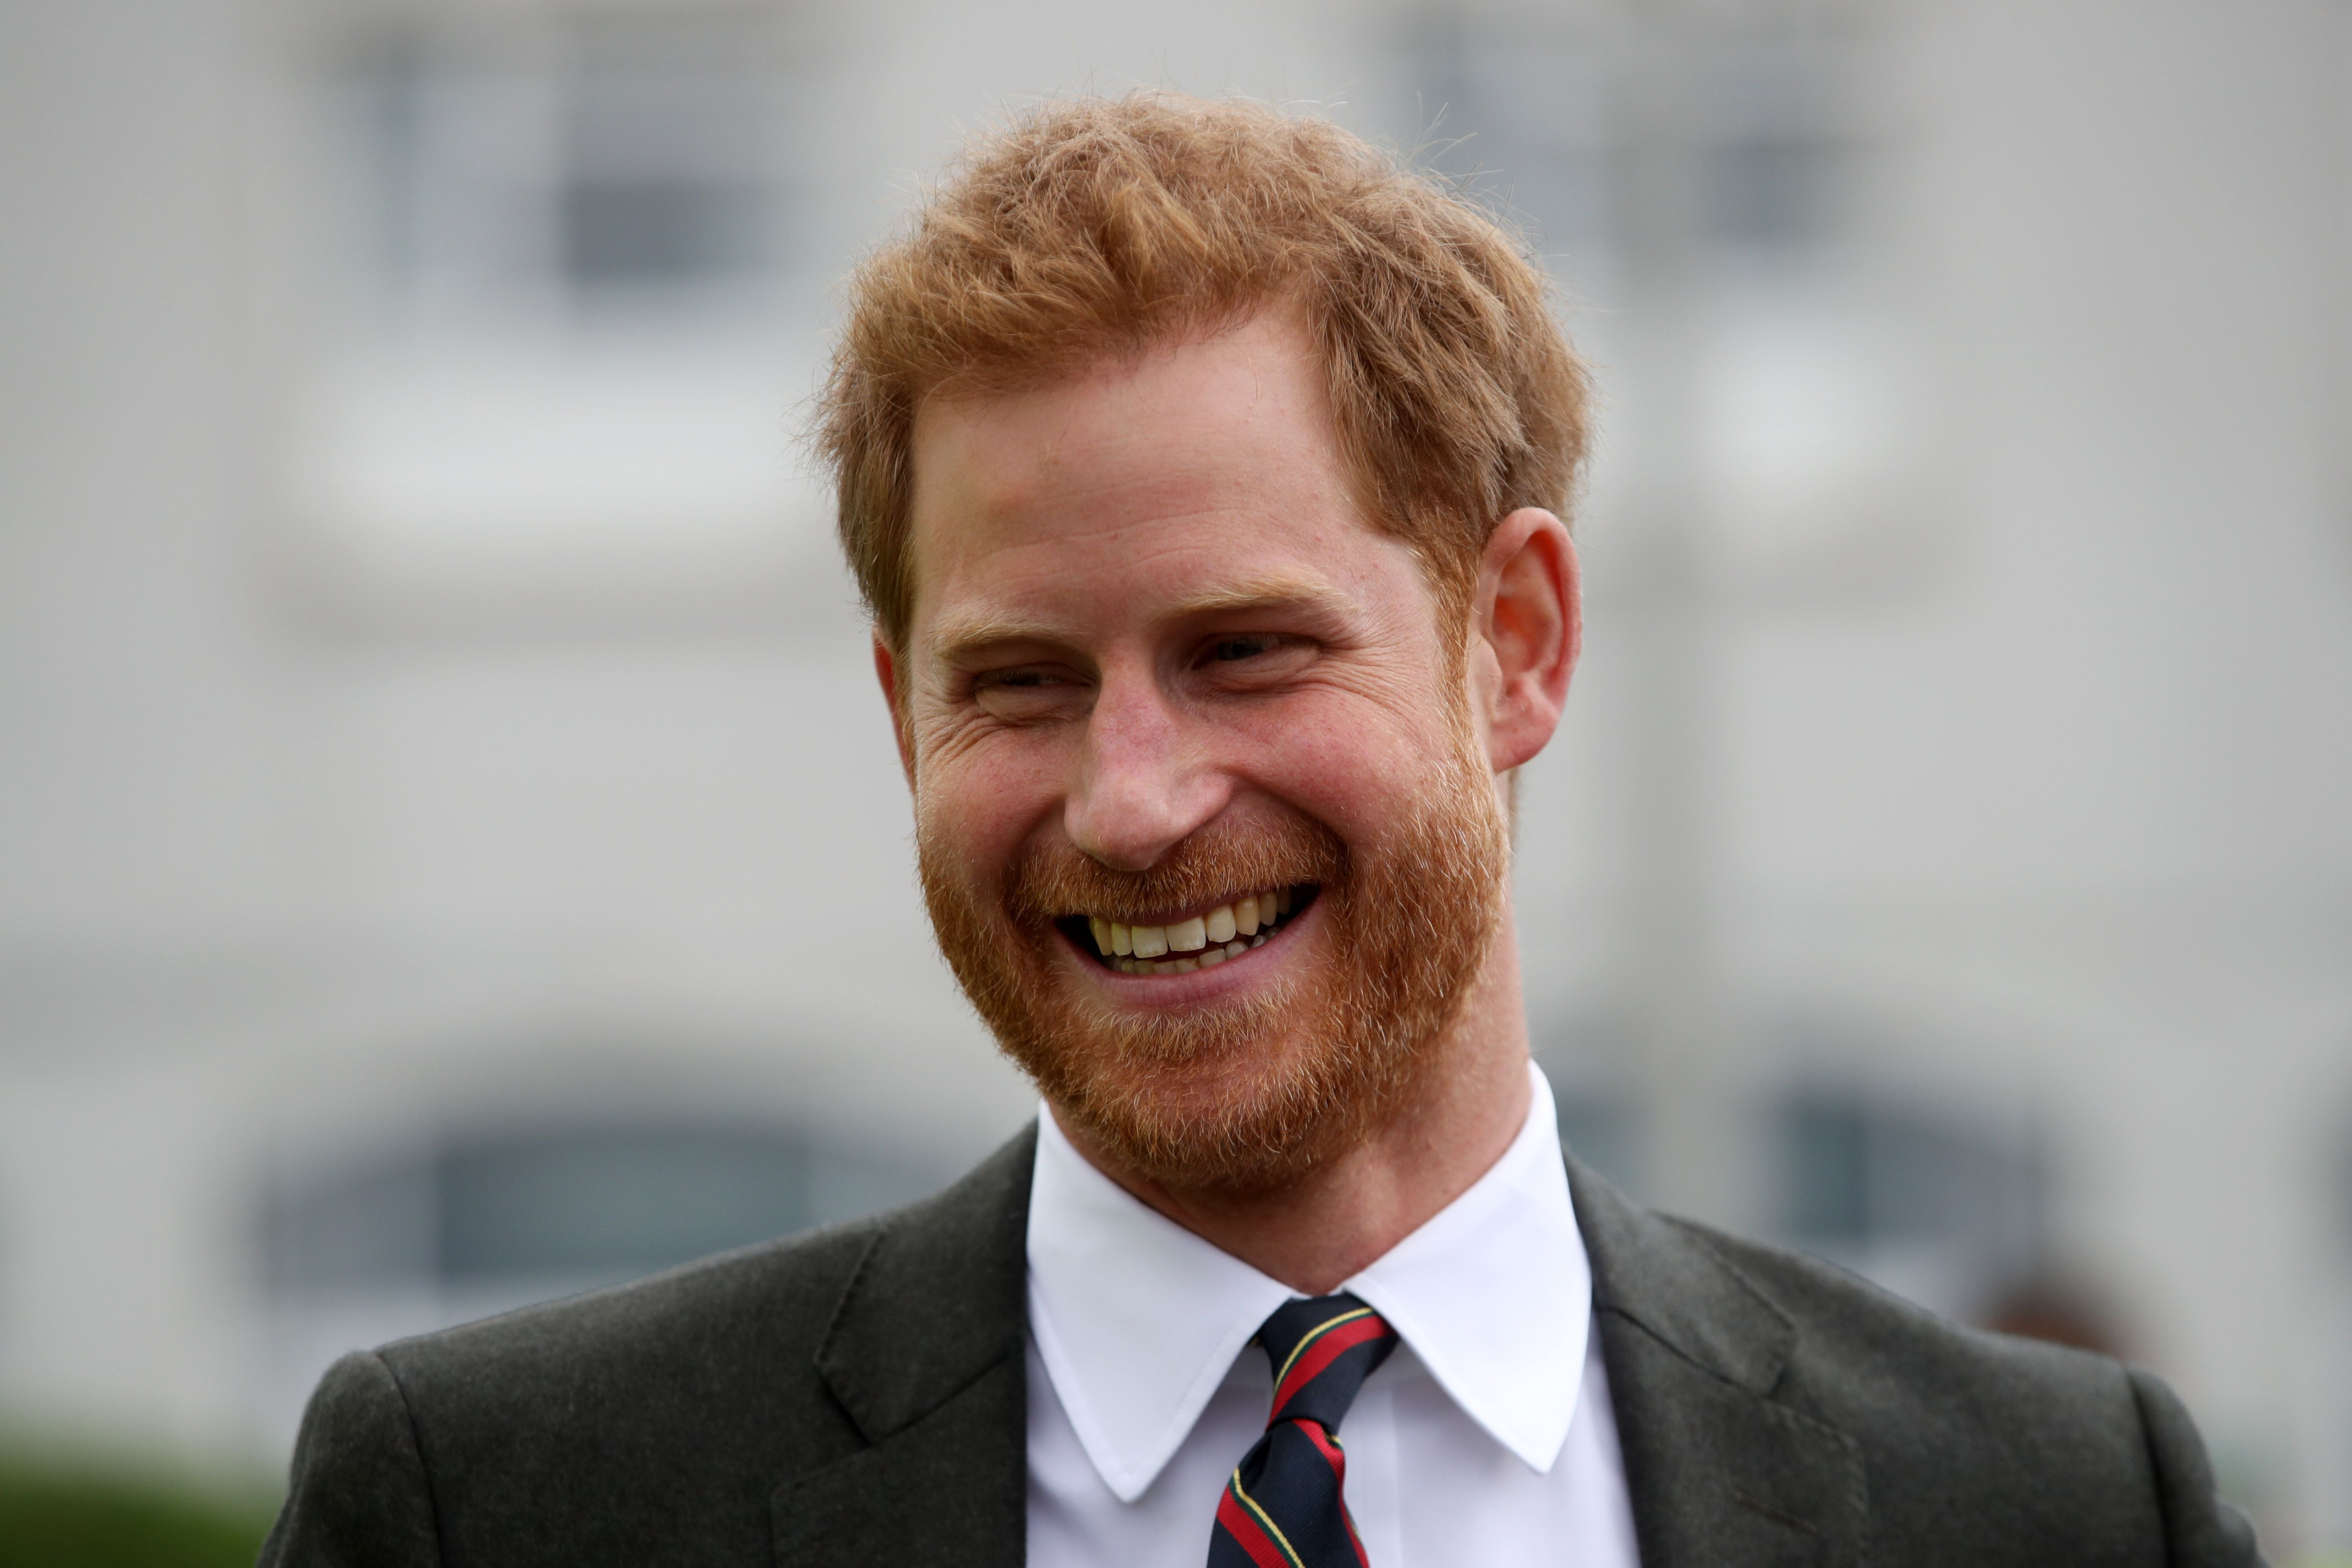 What Prince Harry Wrote To Fans In His 34th Birthday Thank You Notes